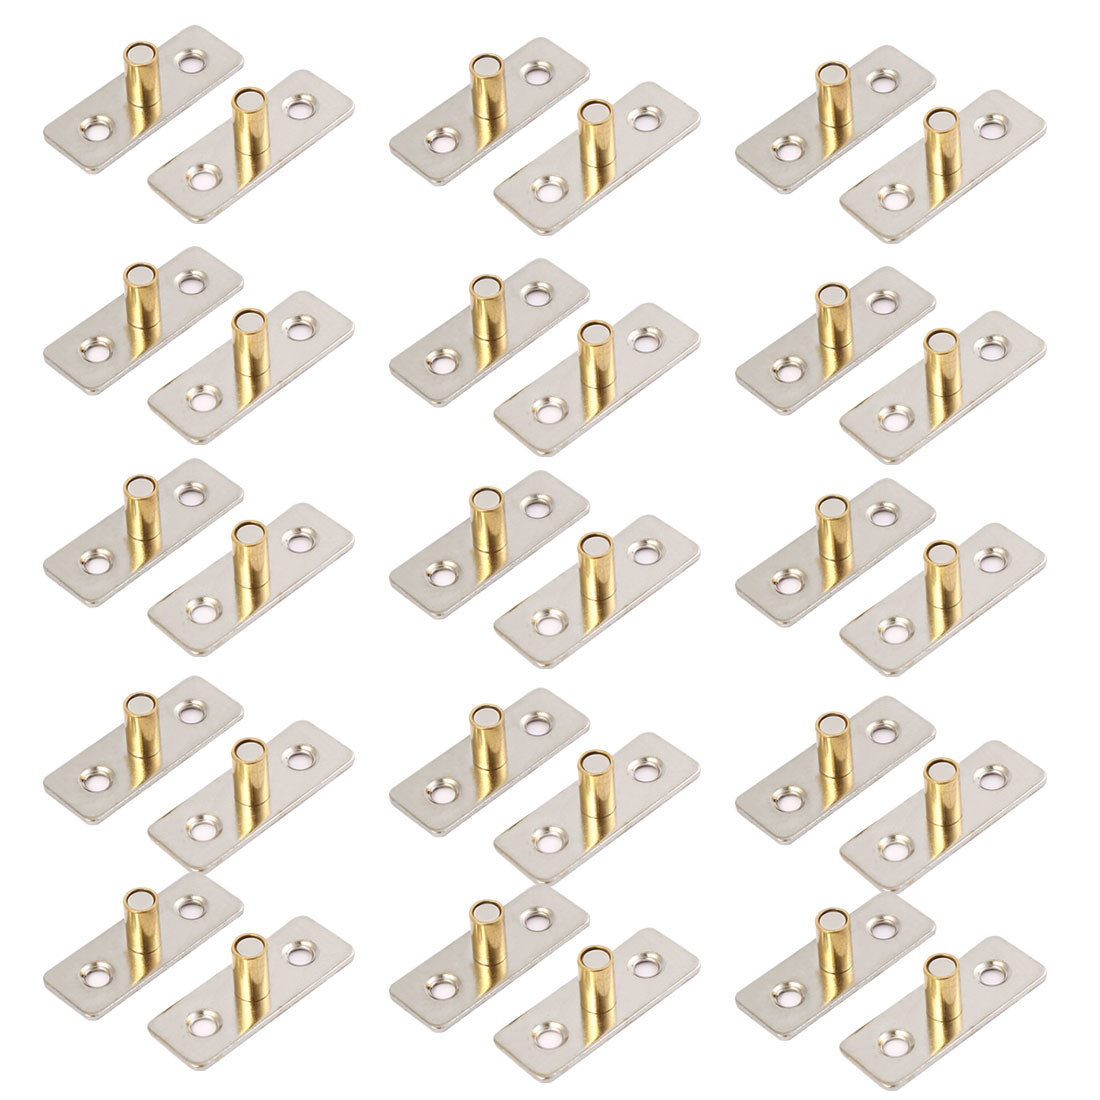 8mm Diameter Sliding Door Hanging Round Wheel Guide Locator Stopper 30pcs